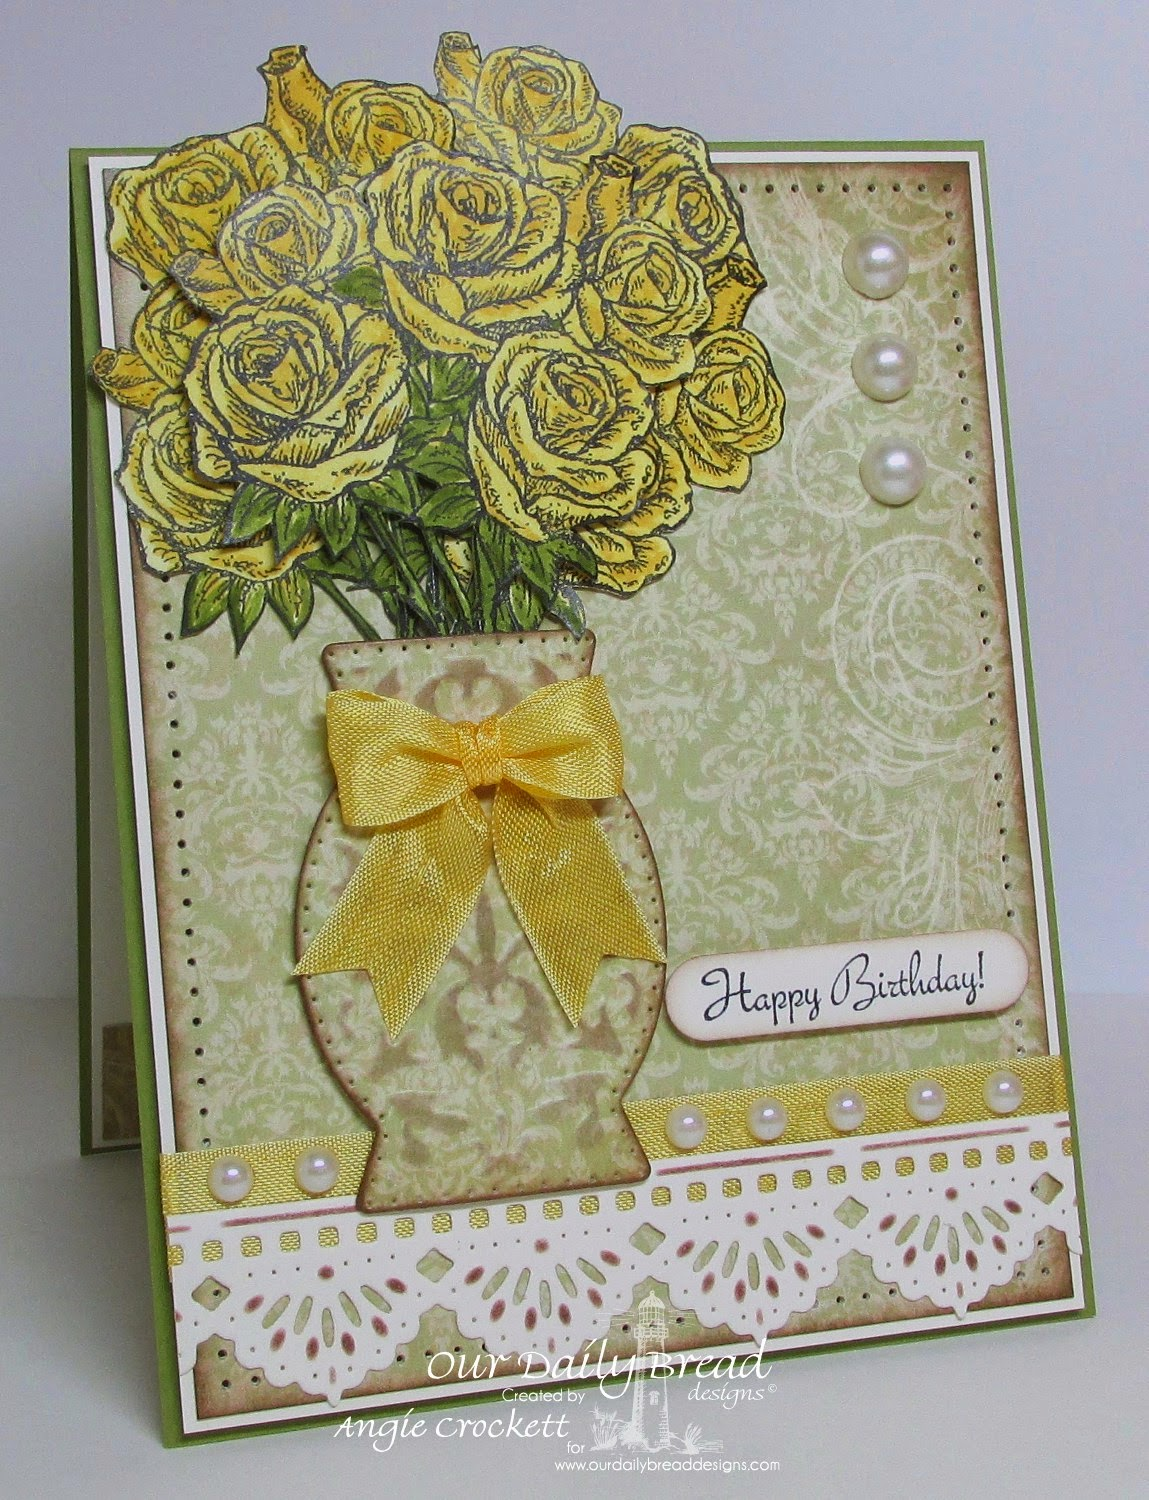 ODBD Rose Bouquet, ODBD Custom Decorative Vase Die, ODBD Custom Beautiful Borders Die Set, Card Designer Angie Crockett